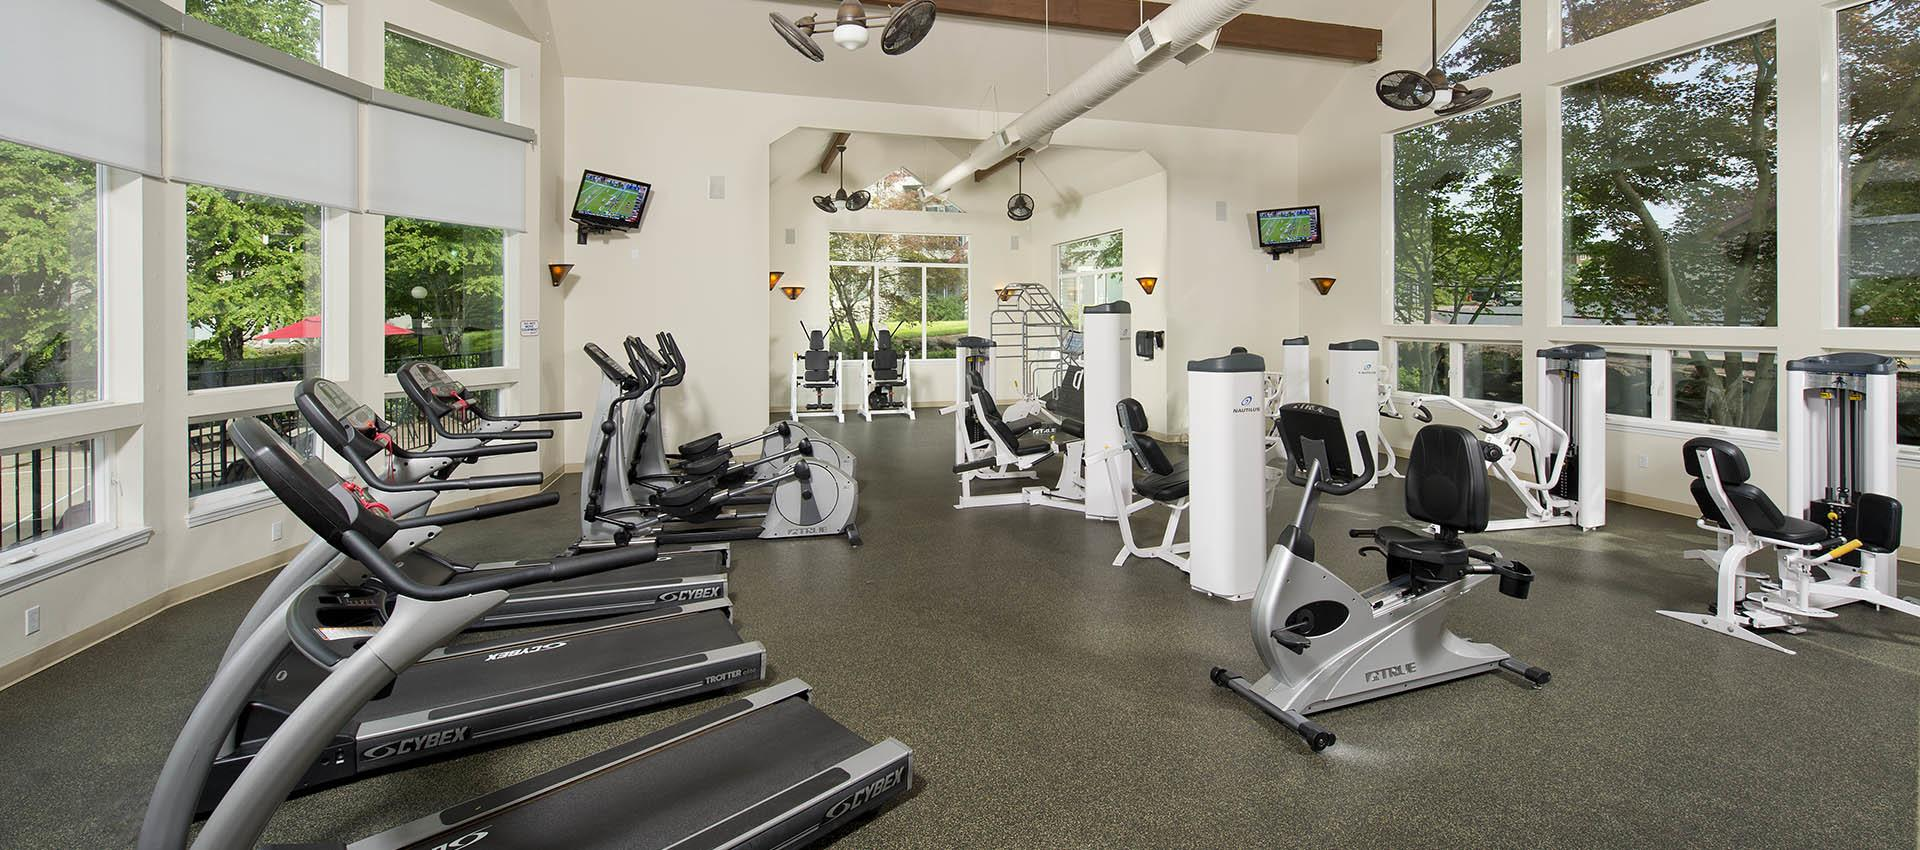 24 Hour Fitness Center at Altamont Summit in OR